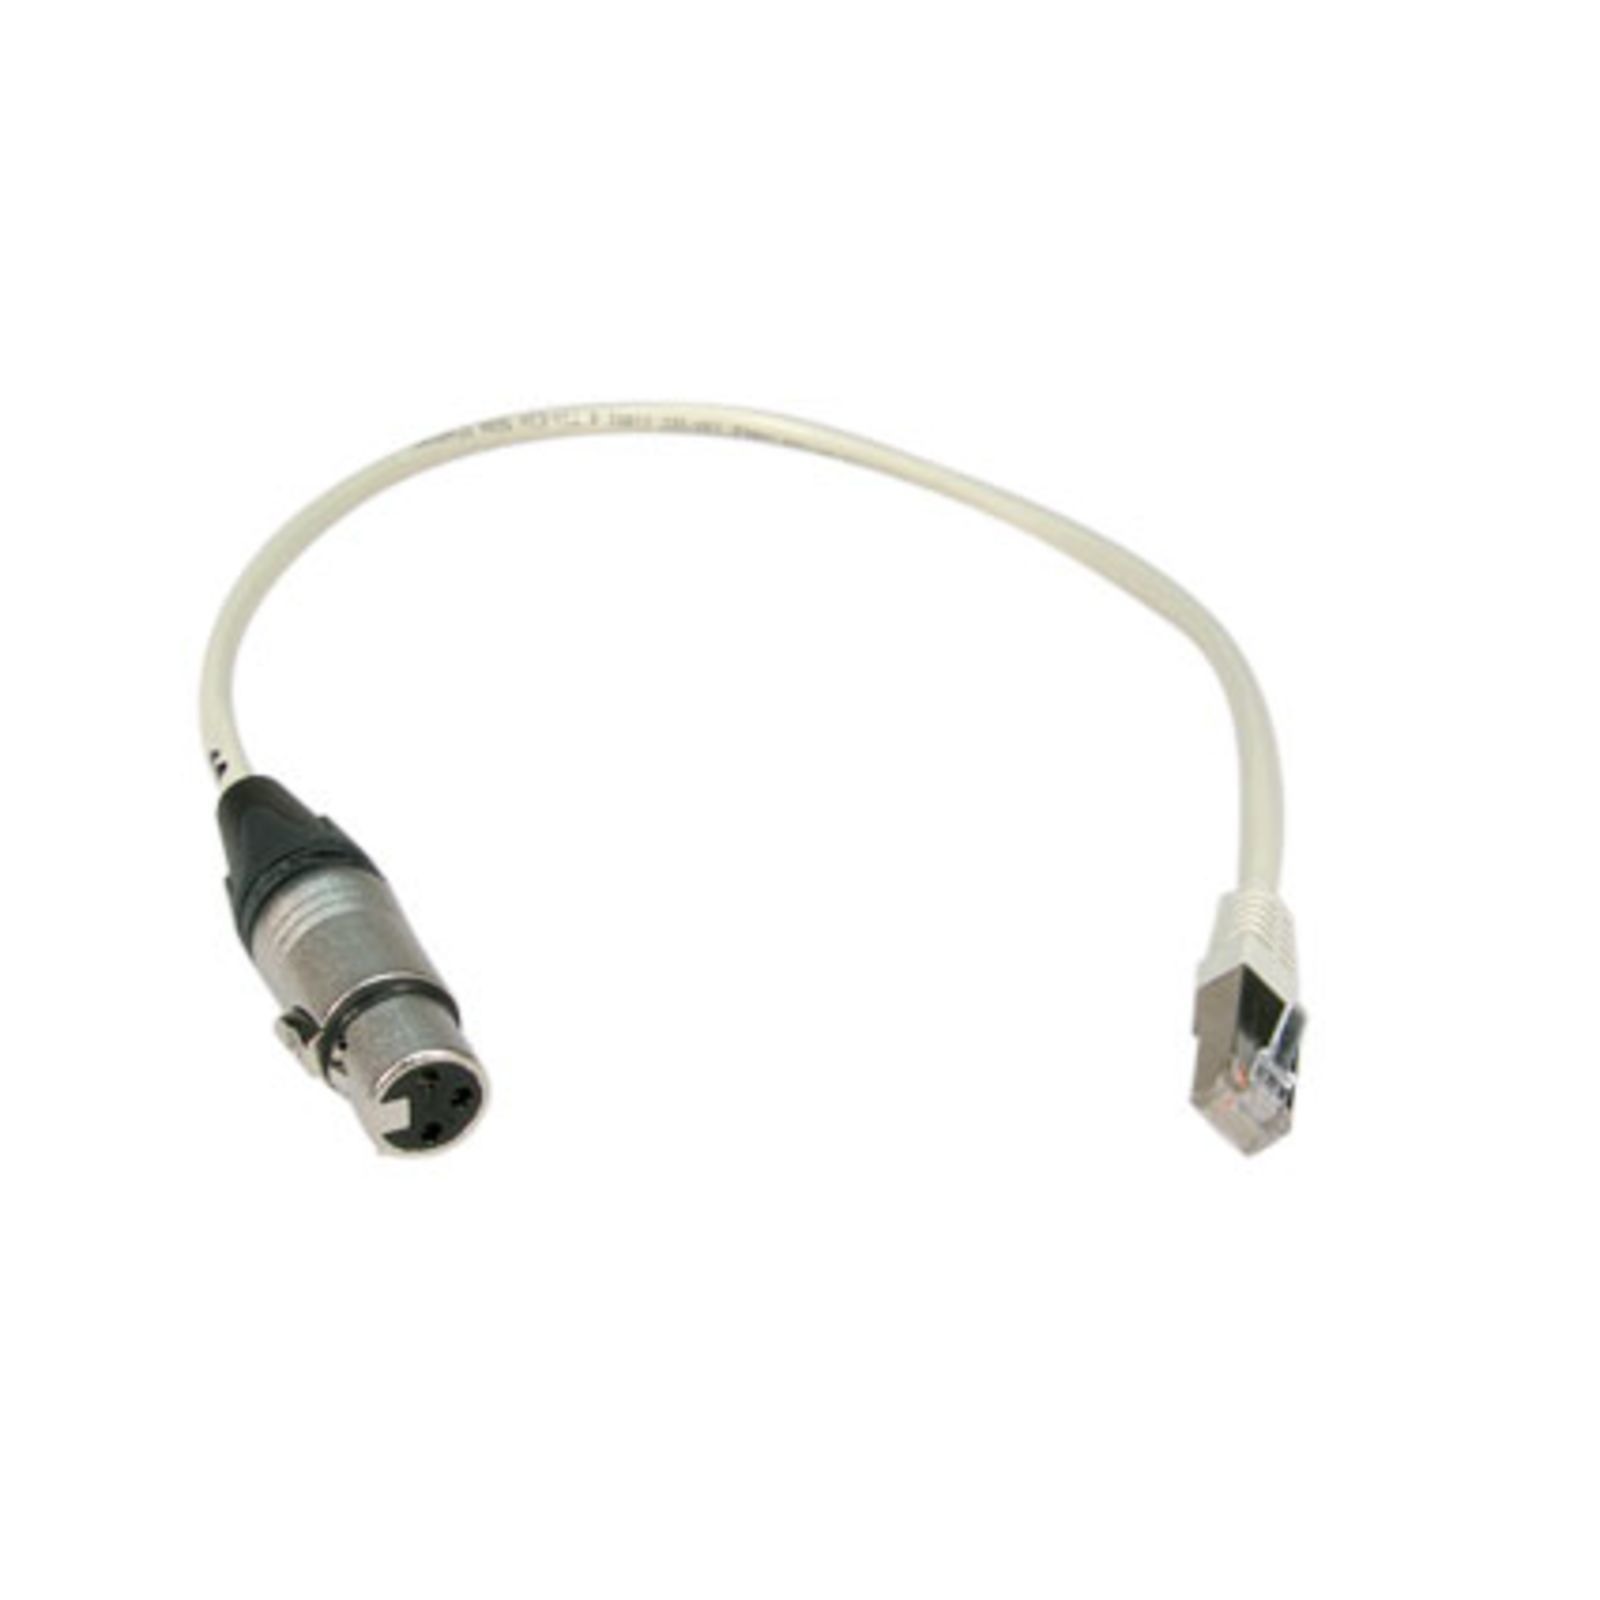 Litecraft Adapter RJ 45 XLR 3-pol female -> CAT 5 0,5m Produktbild